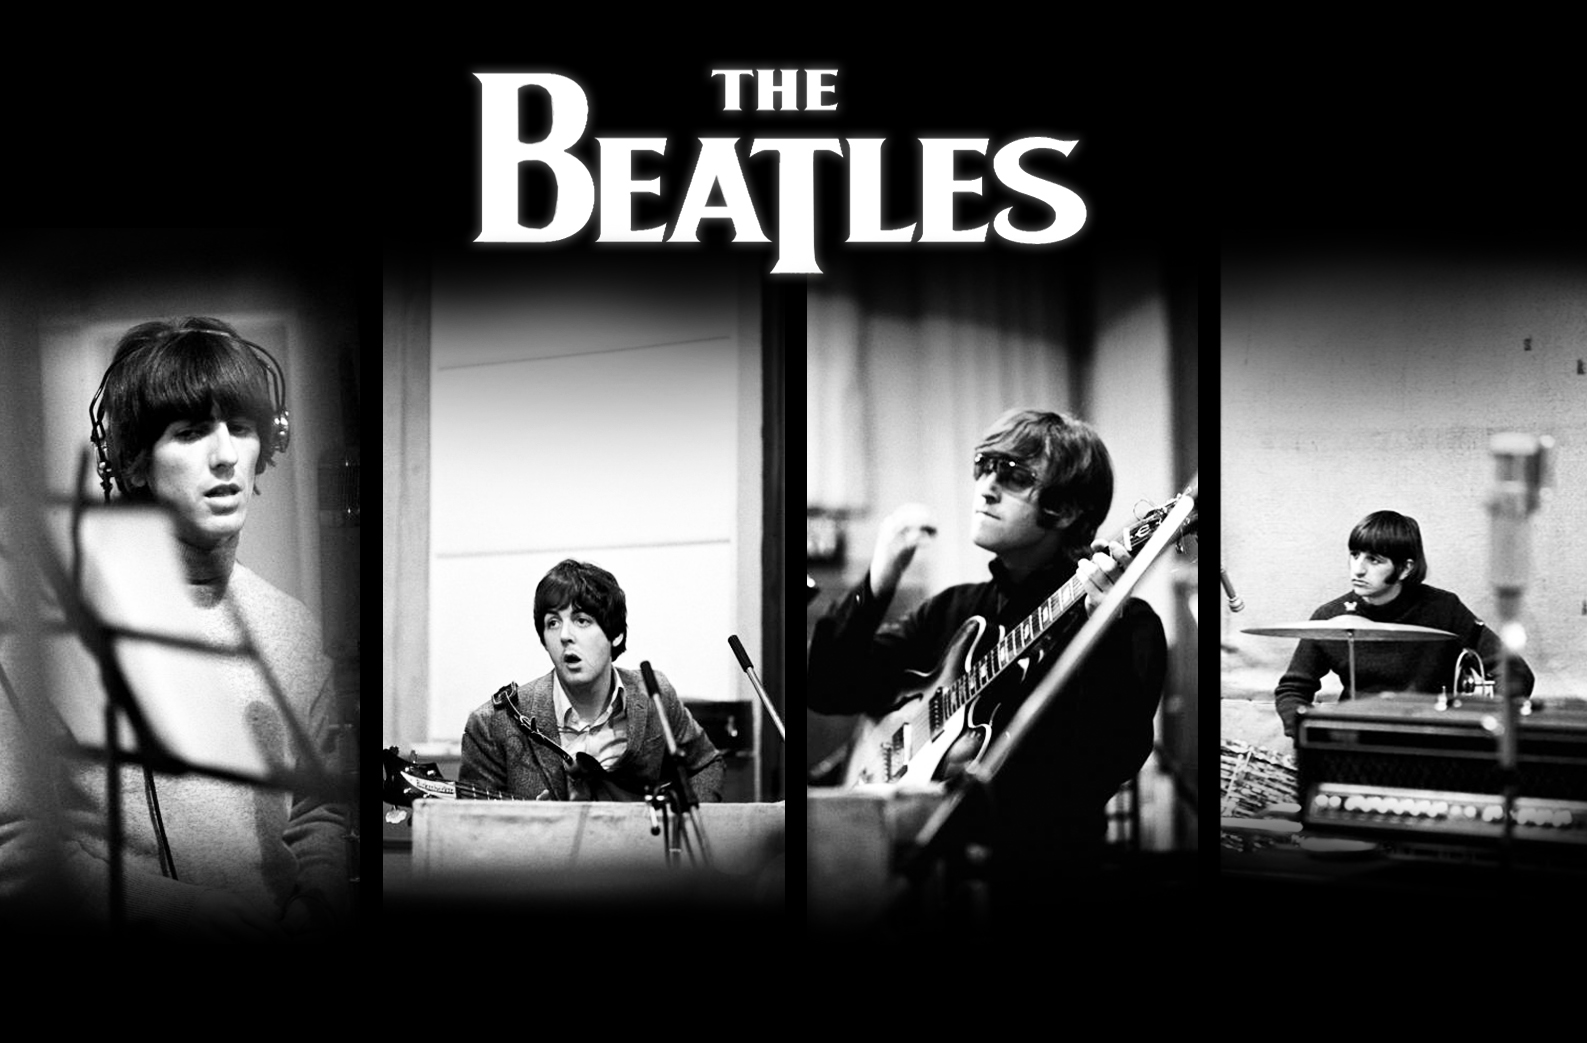 The Beatles Wallpaper Original by ~ConnieChan on deviantART